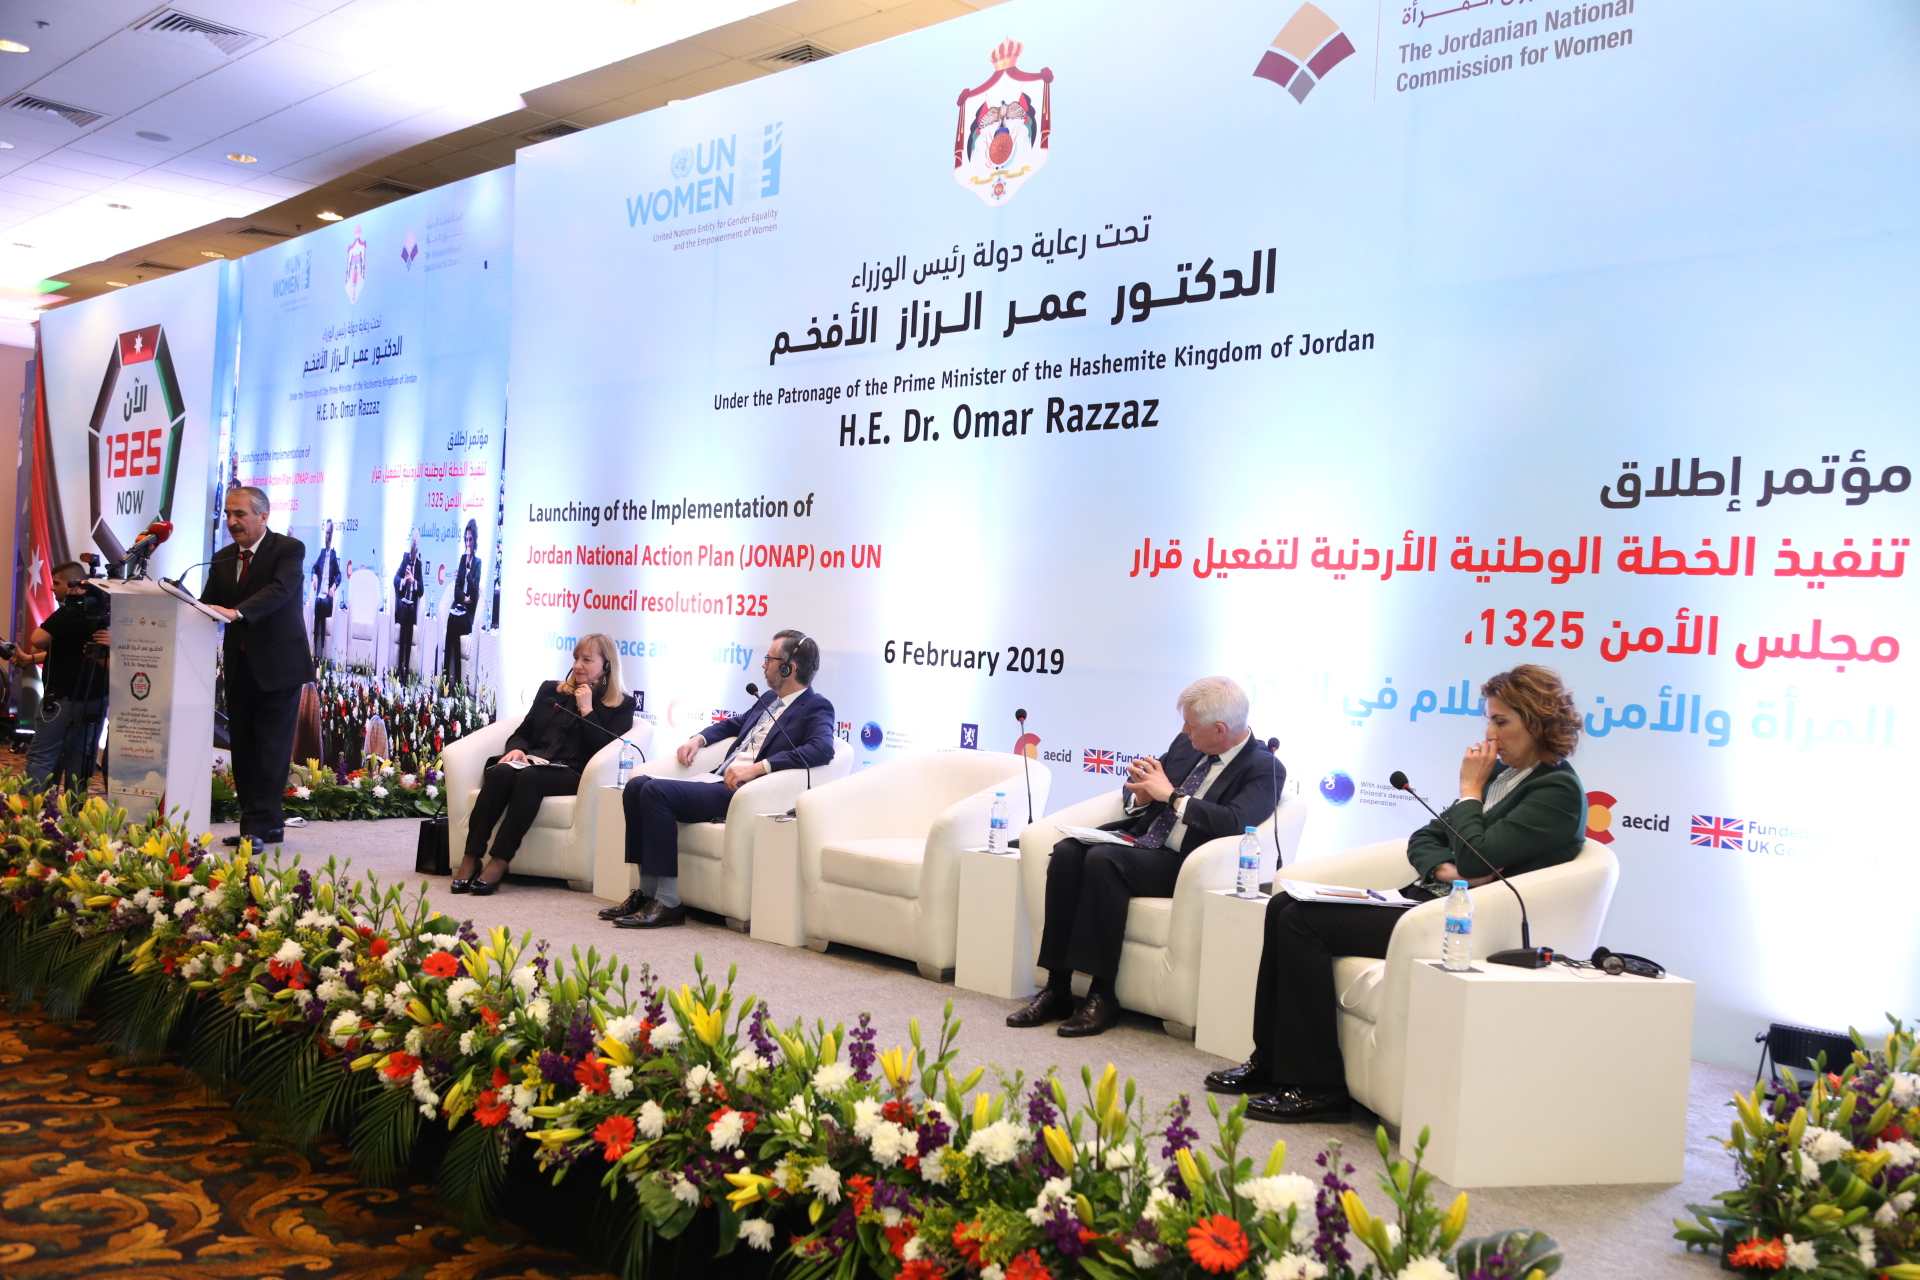 LAUNCHING IMPLEMENTATION OF JORDAN NATIONAL ACTION PLAN (JONAP) ON UNITED NATIONS SECURITY COUNCIL RESOLUTION 1325, A REGIONAL CONFERENCE